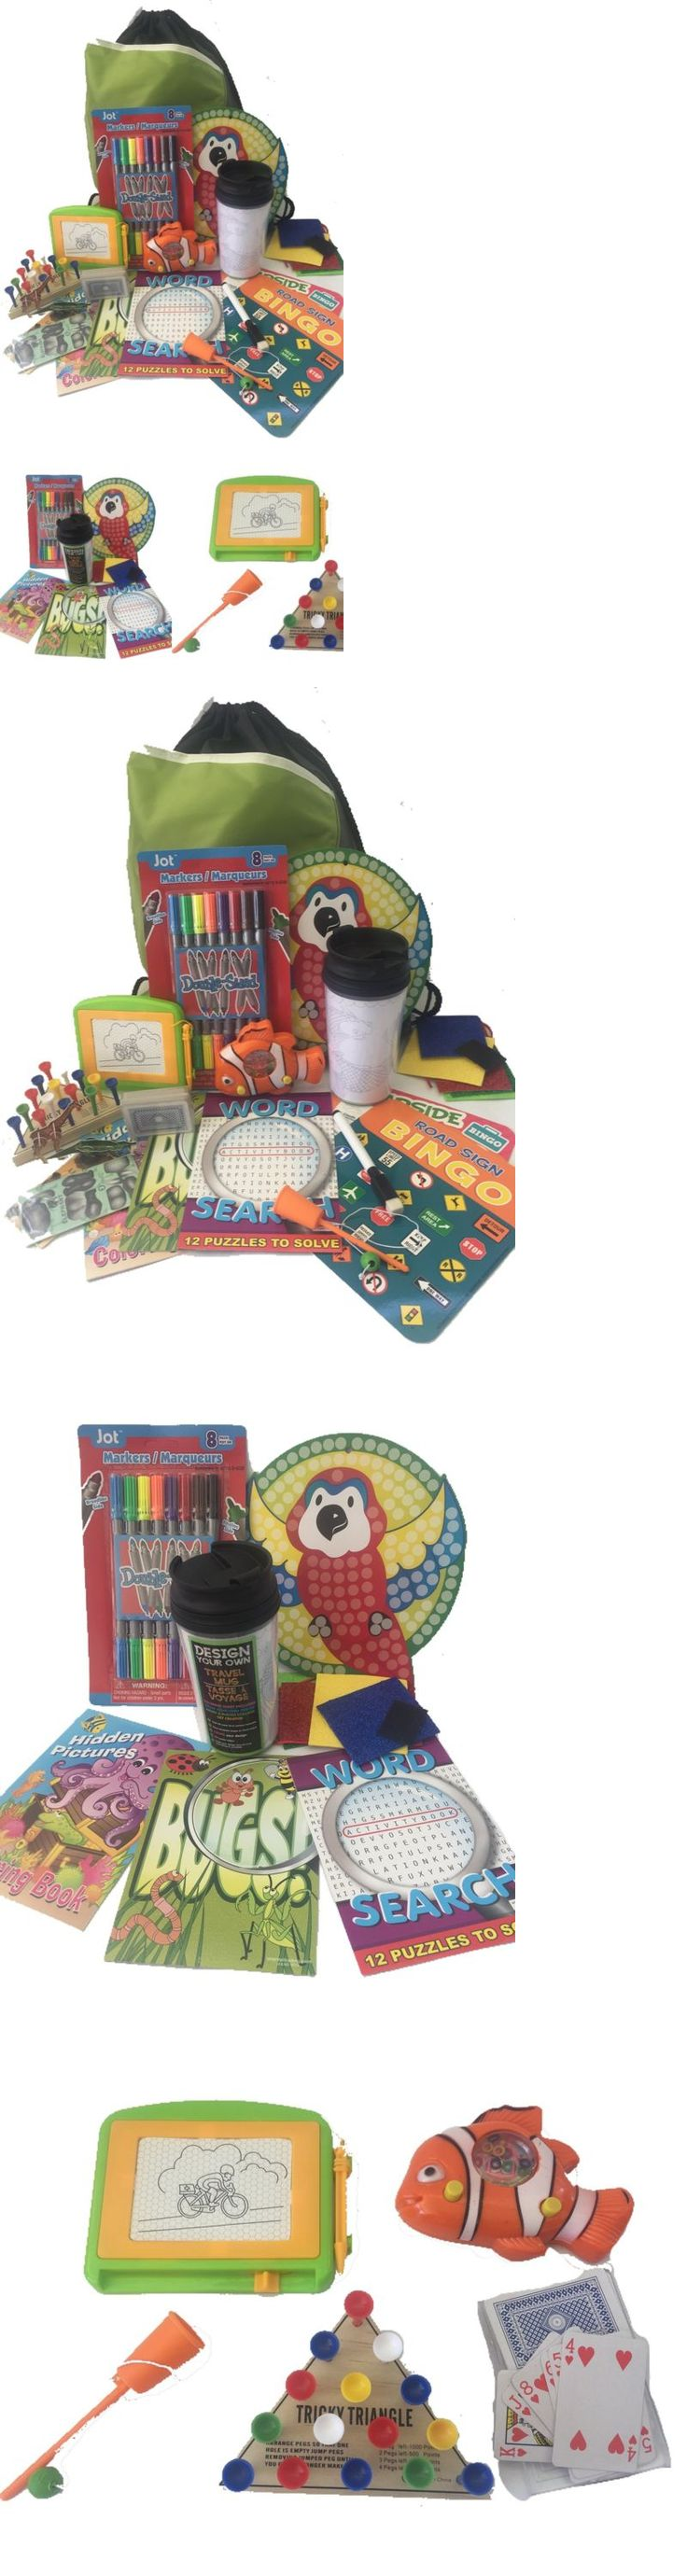 Other Snowboarding 159155: Travel Activity Bag Kit For Kids - Keep Children Busy On The Airplane Or In The -> BUY IT NOW ONLY: $49.58 on eBay!